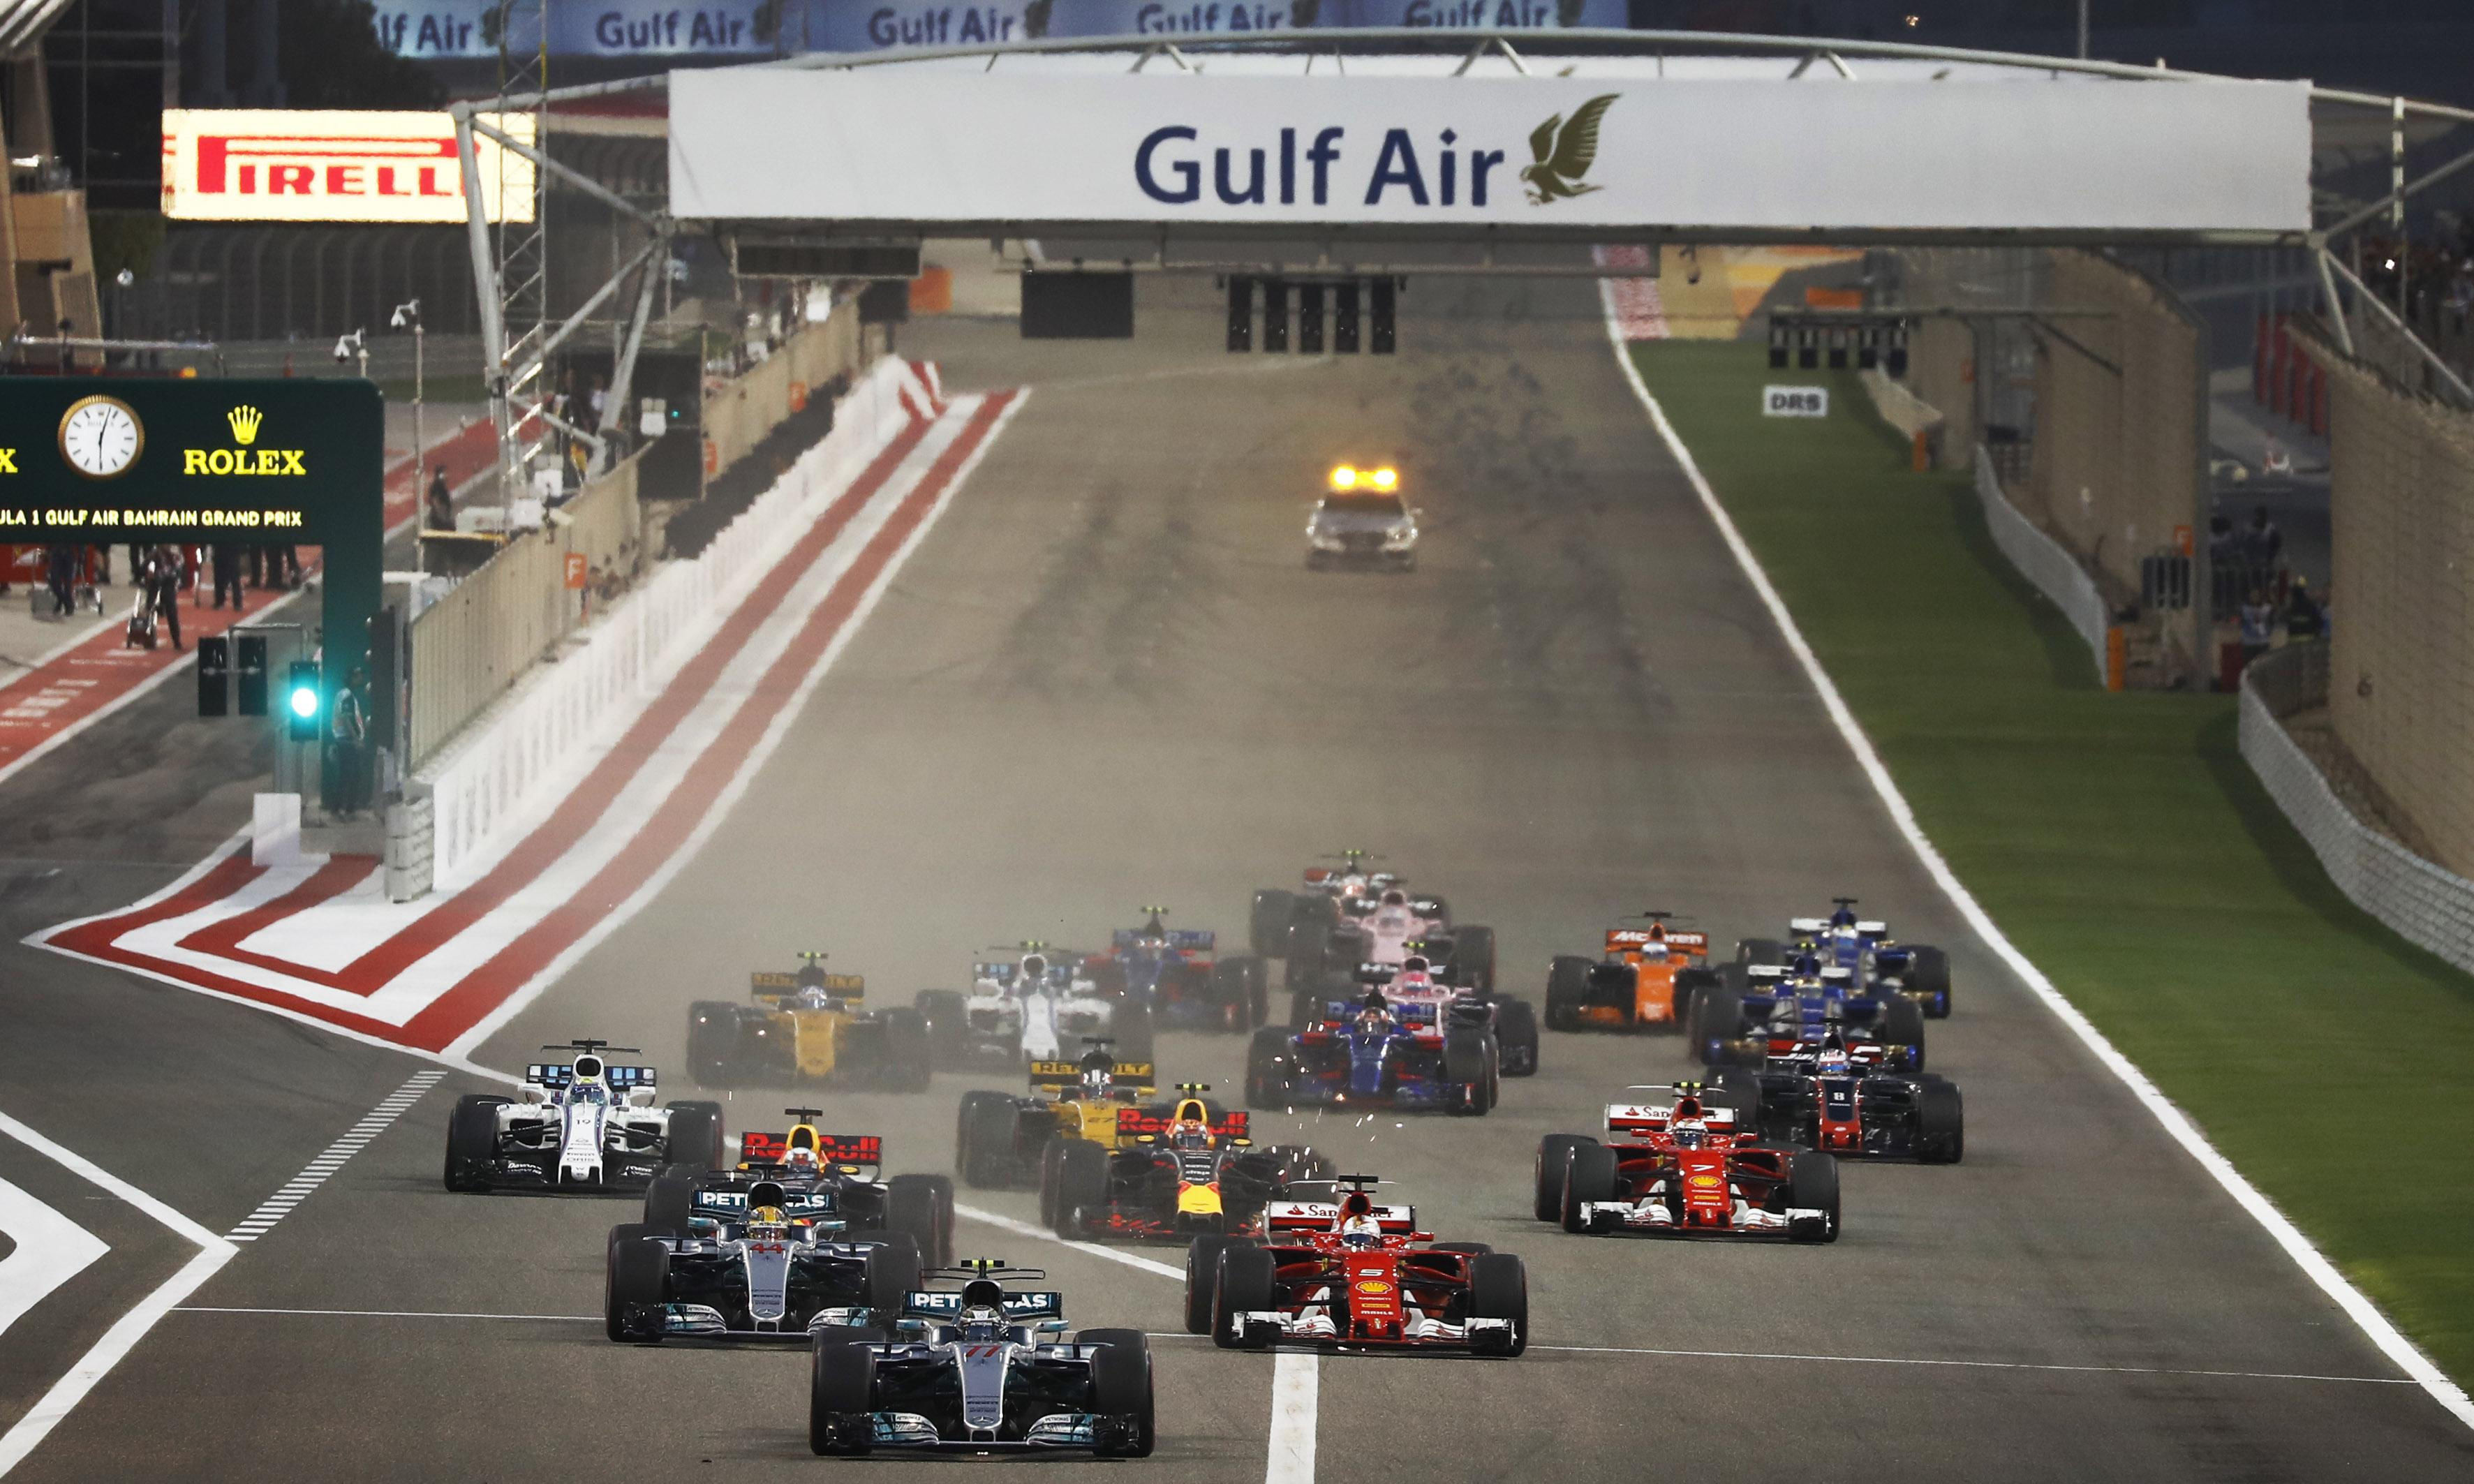 Every moment I spend in prison in Bahrain stains the reputation of F1